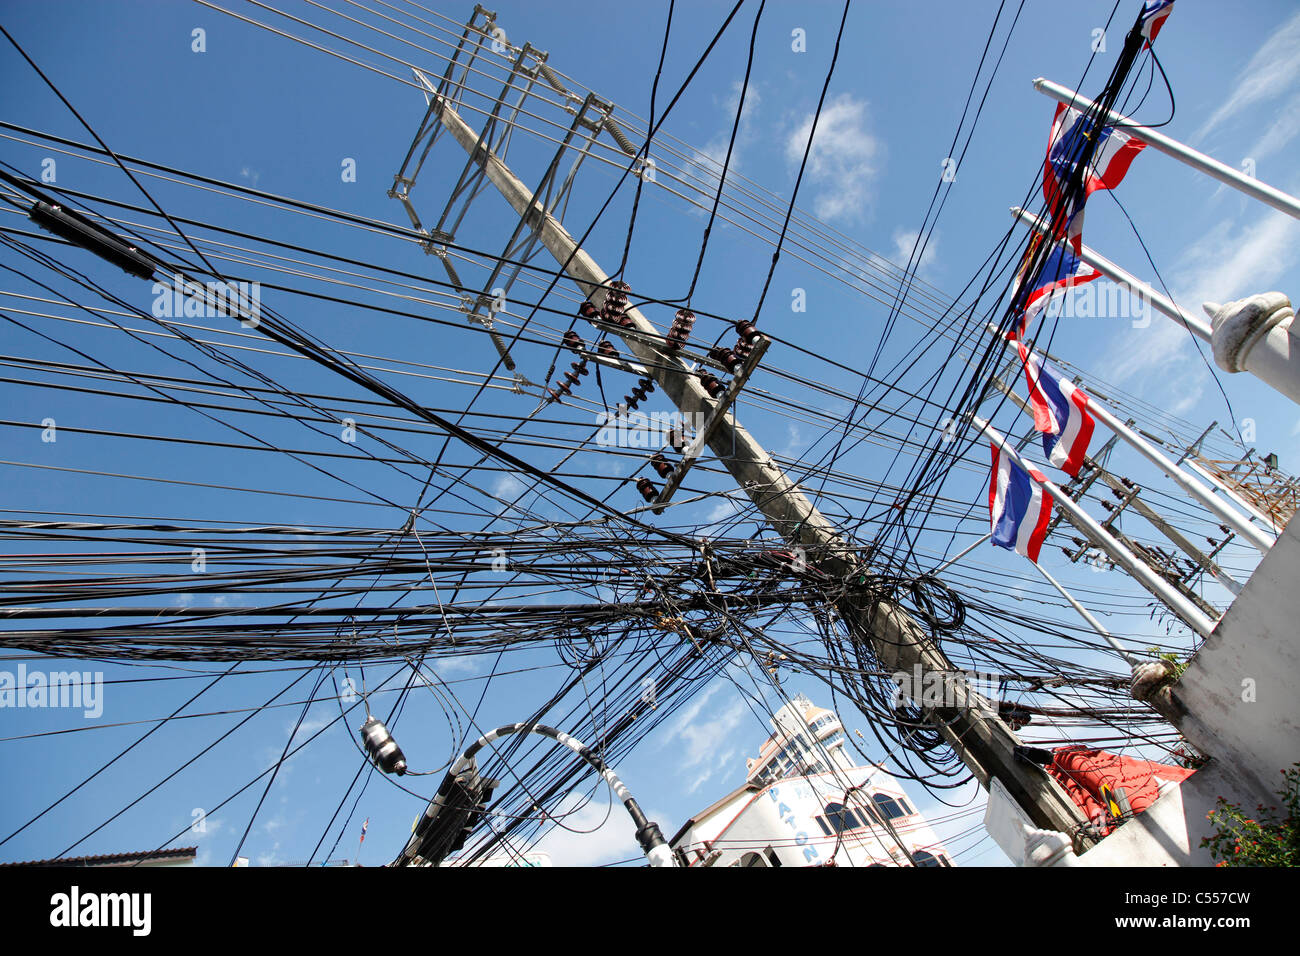 Telegraph poles and dangerous tangled mass of electricity ...